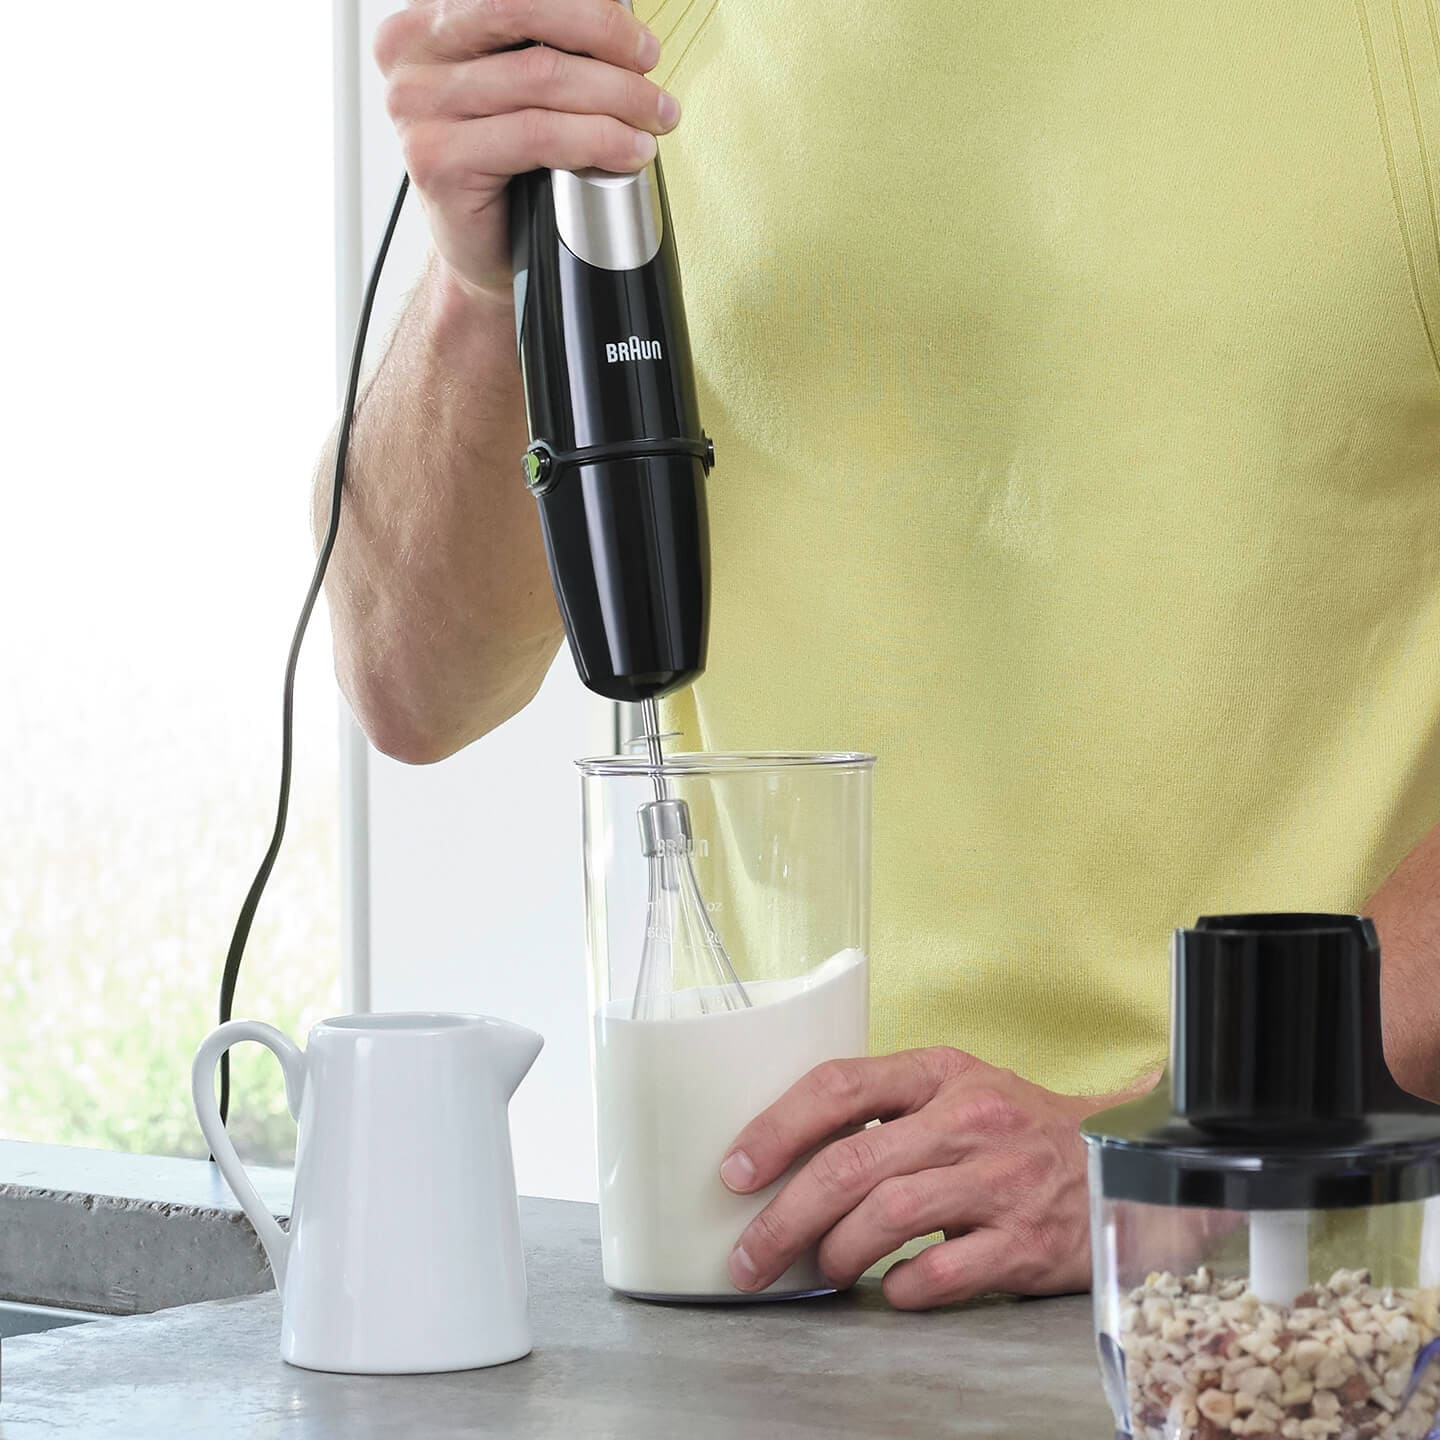 Braun MultiQuick 9X Hand blender with whisk attachment